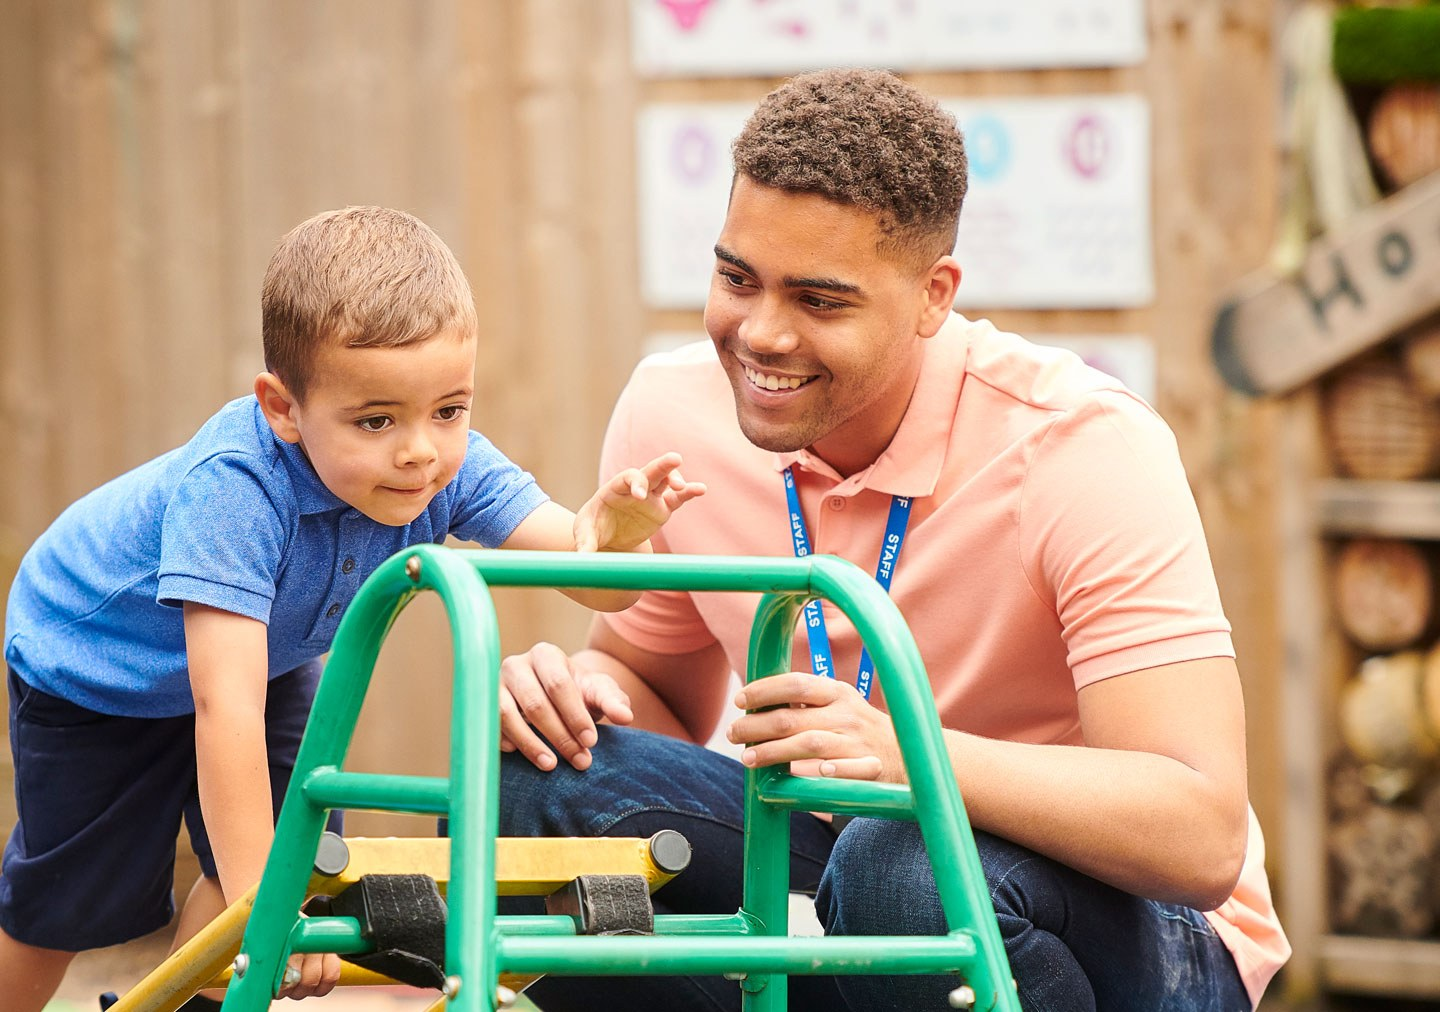 Childcare student in chilcare setting helping a child on some outside play equipment